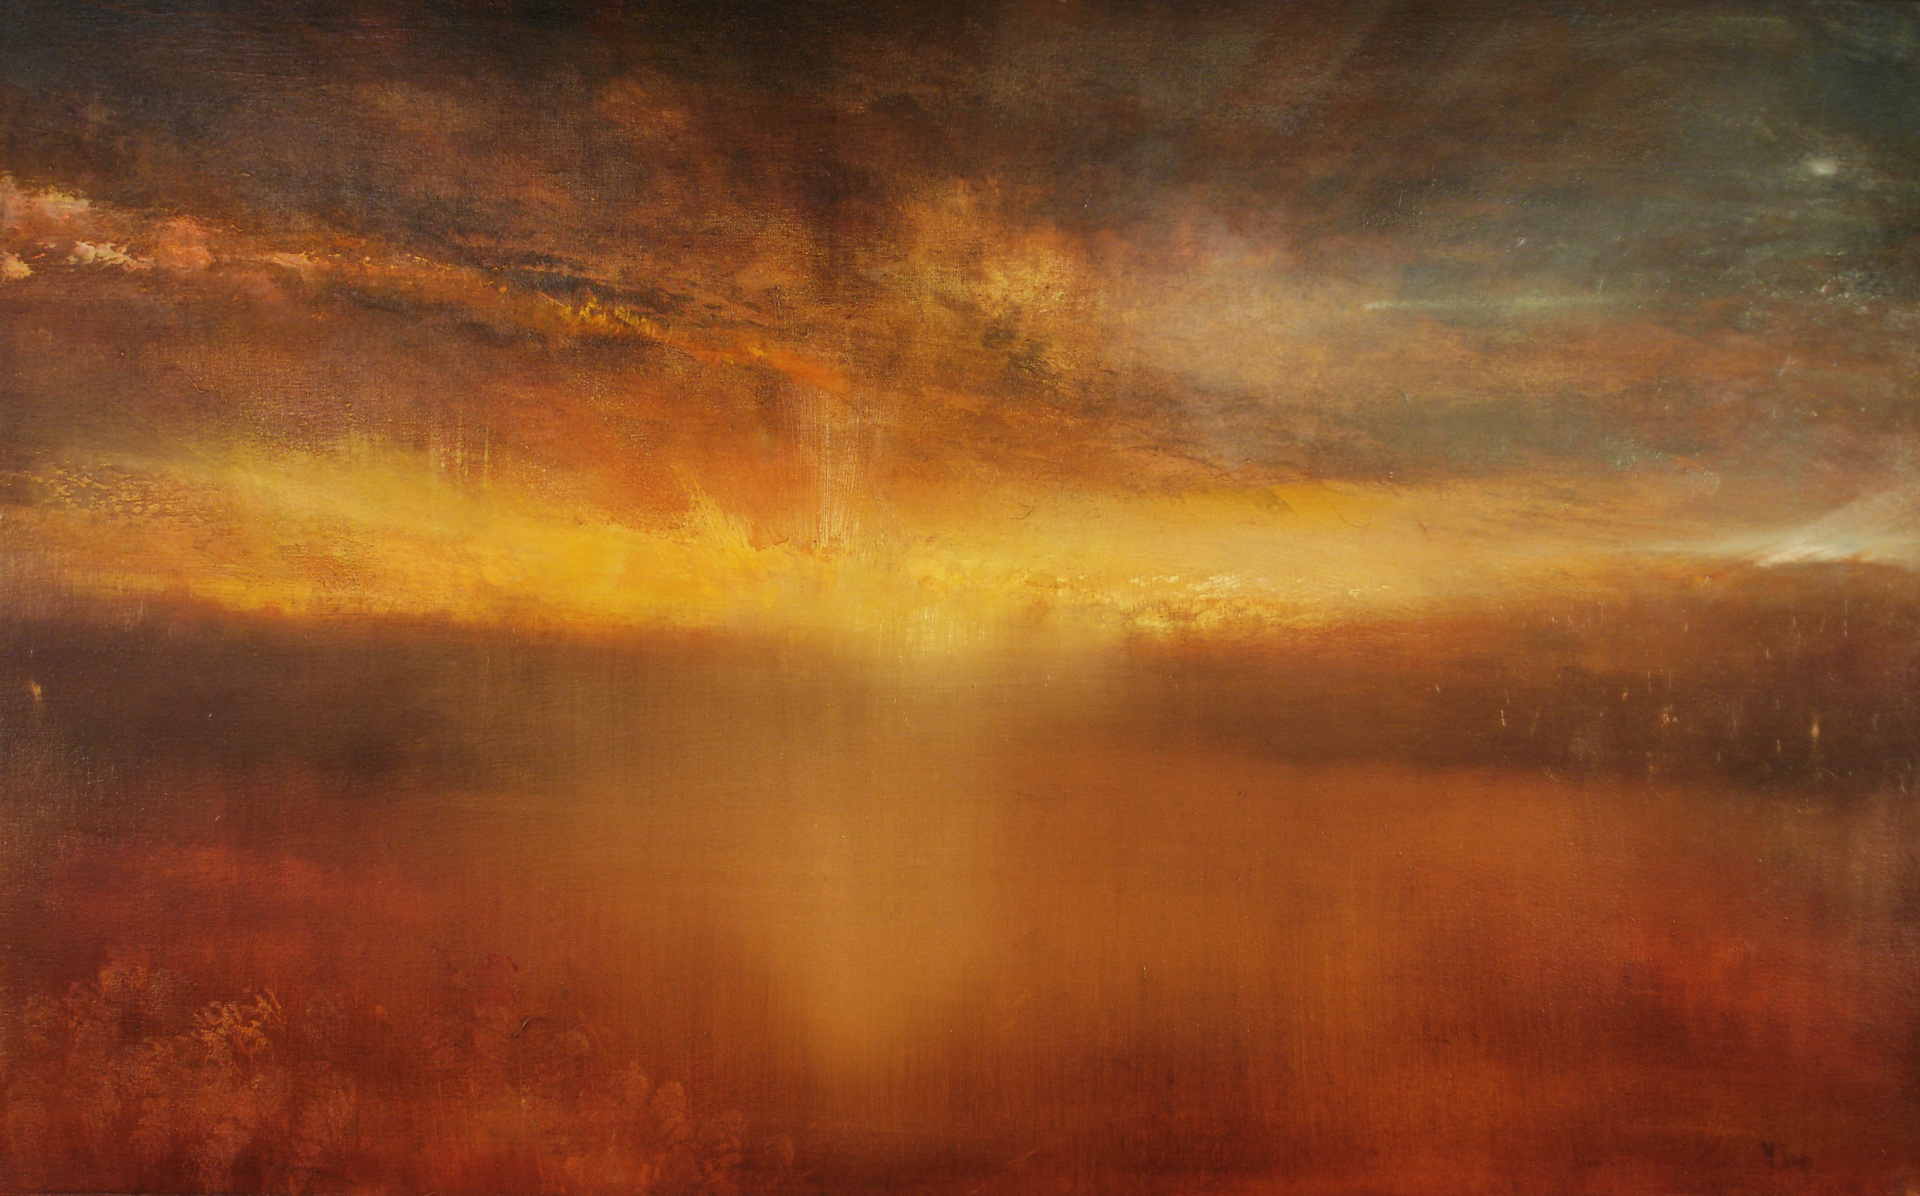 a sunset painting by Maurice Sapiro